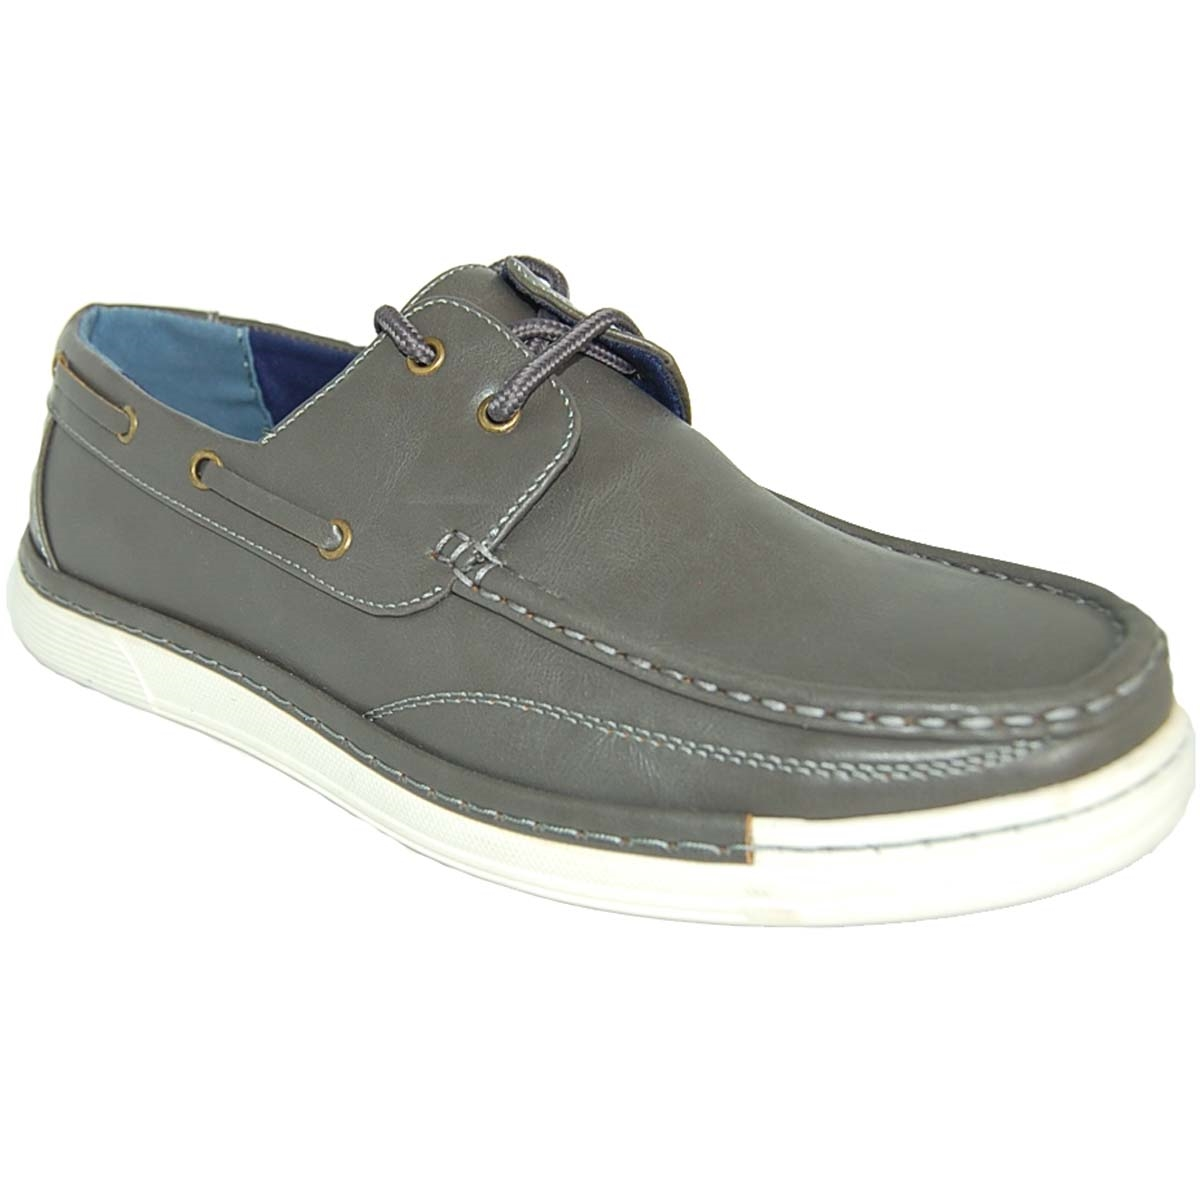 22a611617391 ... ART OF SHOES GRAY FASHION FORWARD BOAT SHOES FOR MEN